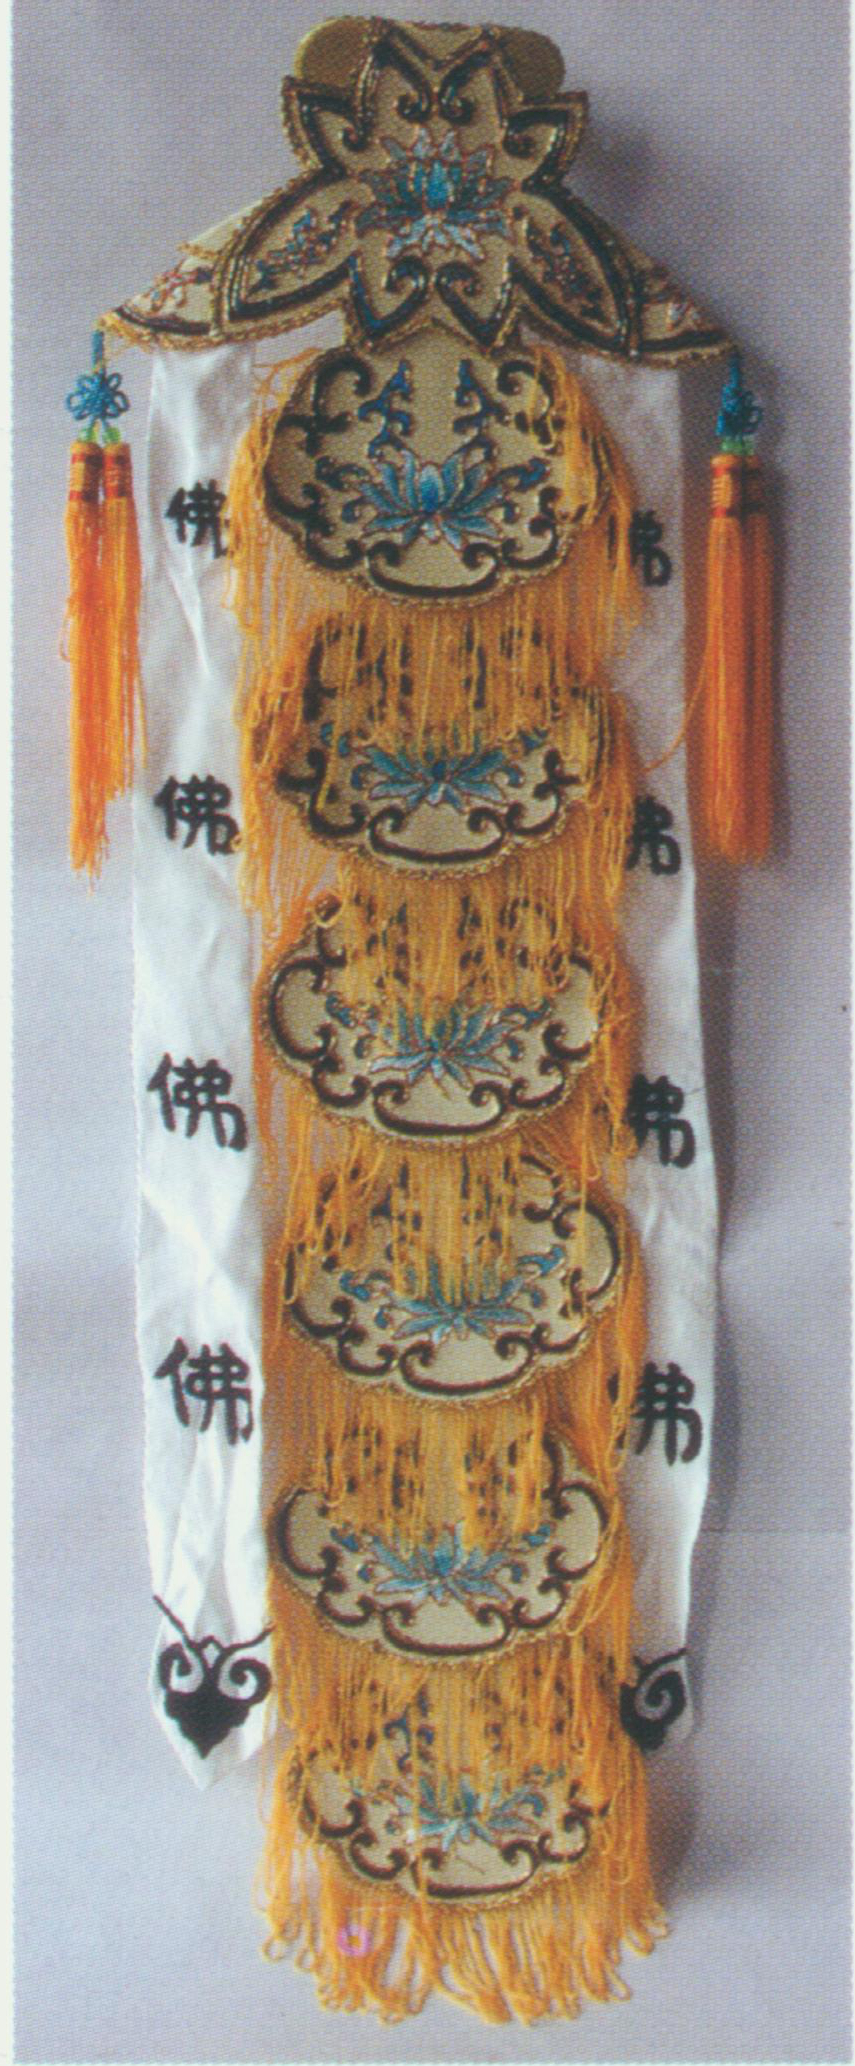 """Taoist Priestess Scarf    A soft hat, also known as """"Miaochang Scarf"""" for it is worn by Chen Miaochang, a character in  The Jade Hairpin . The top is made of two ladder-shaped satin cloths. A pair of ribbons embroidered with the word """"Buddhism"""" in Chinese is attached to the hat on both sides. The back consists of six light yellow or white oval cloths, with the word """"Buddhism"""" in Chinese at the center. The hat is decorated with yellow bullion fringes and two shorter ribbons at bottom. It is worn by Taoist priestess, hence the name."""